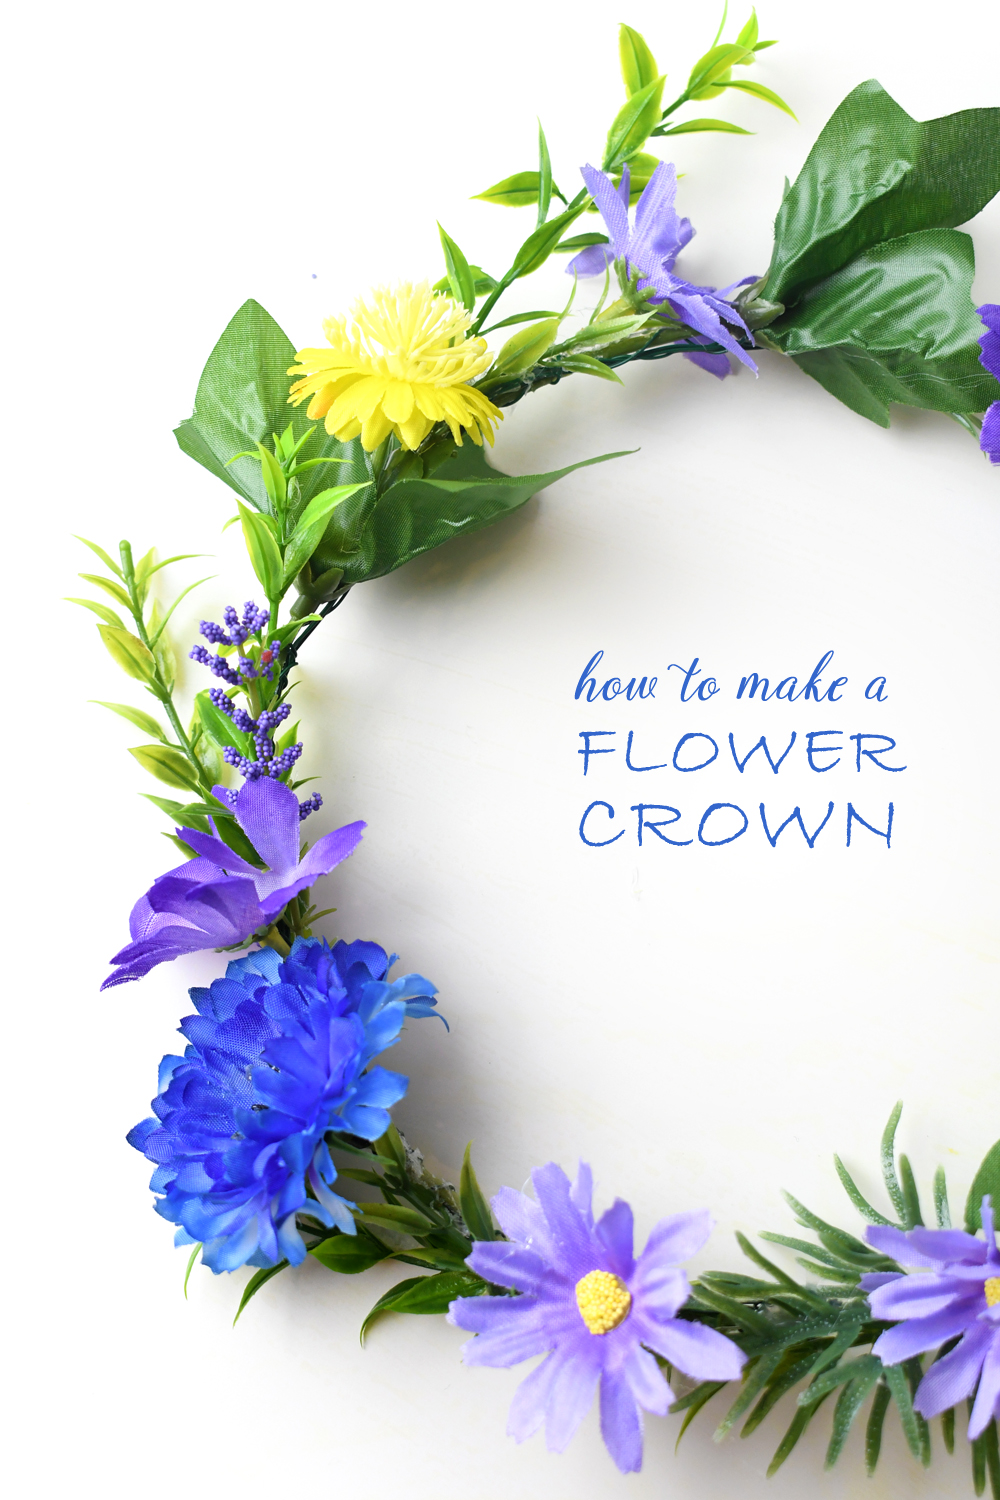 DIY flower crown using silk flowers and wire for photoshoots